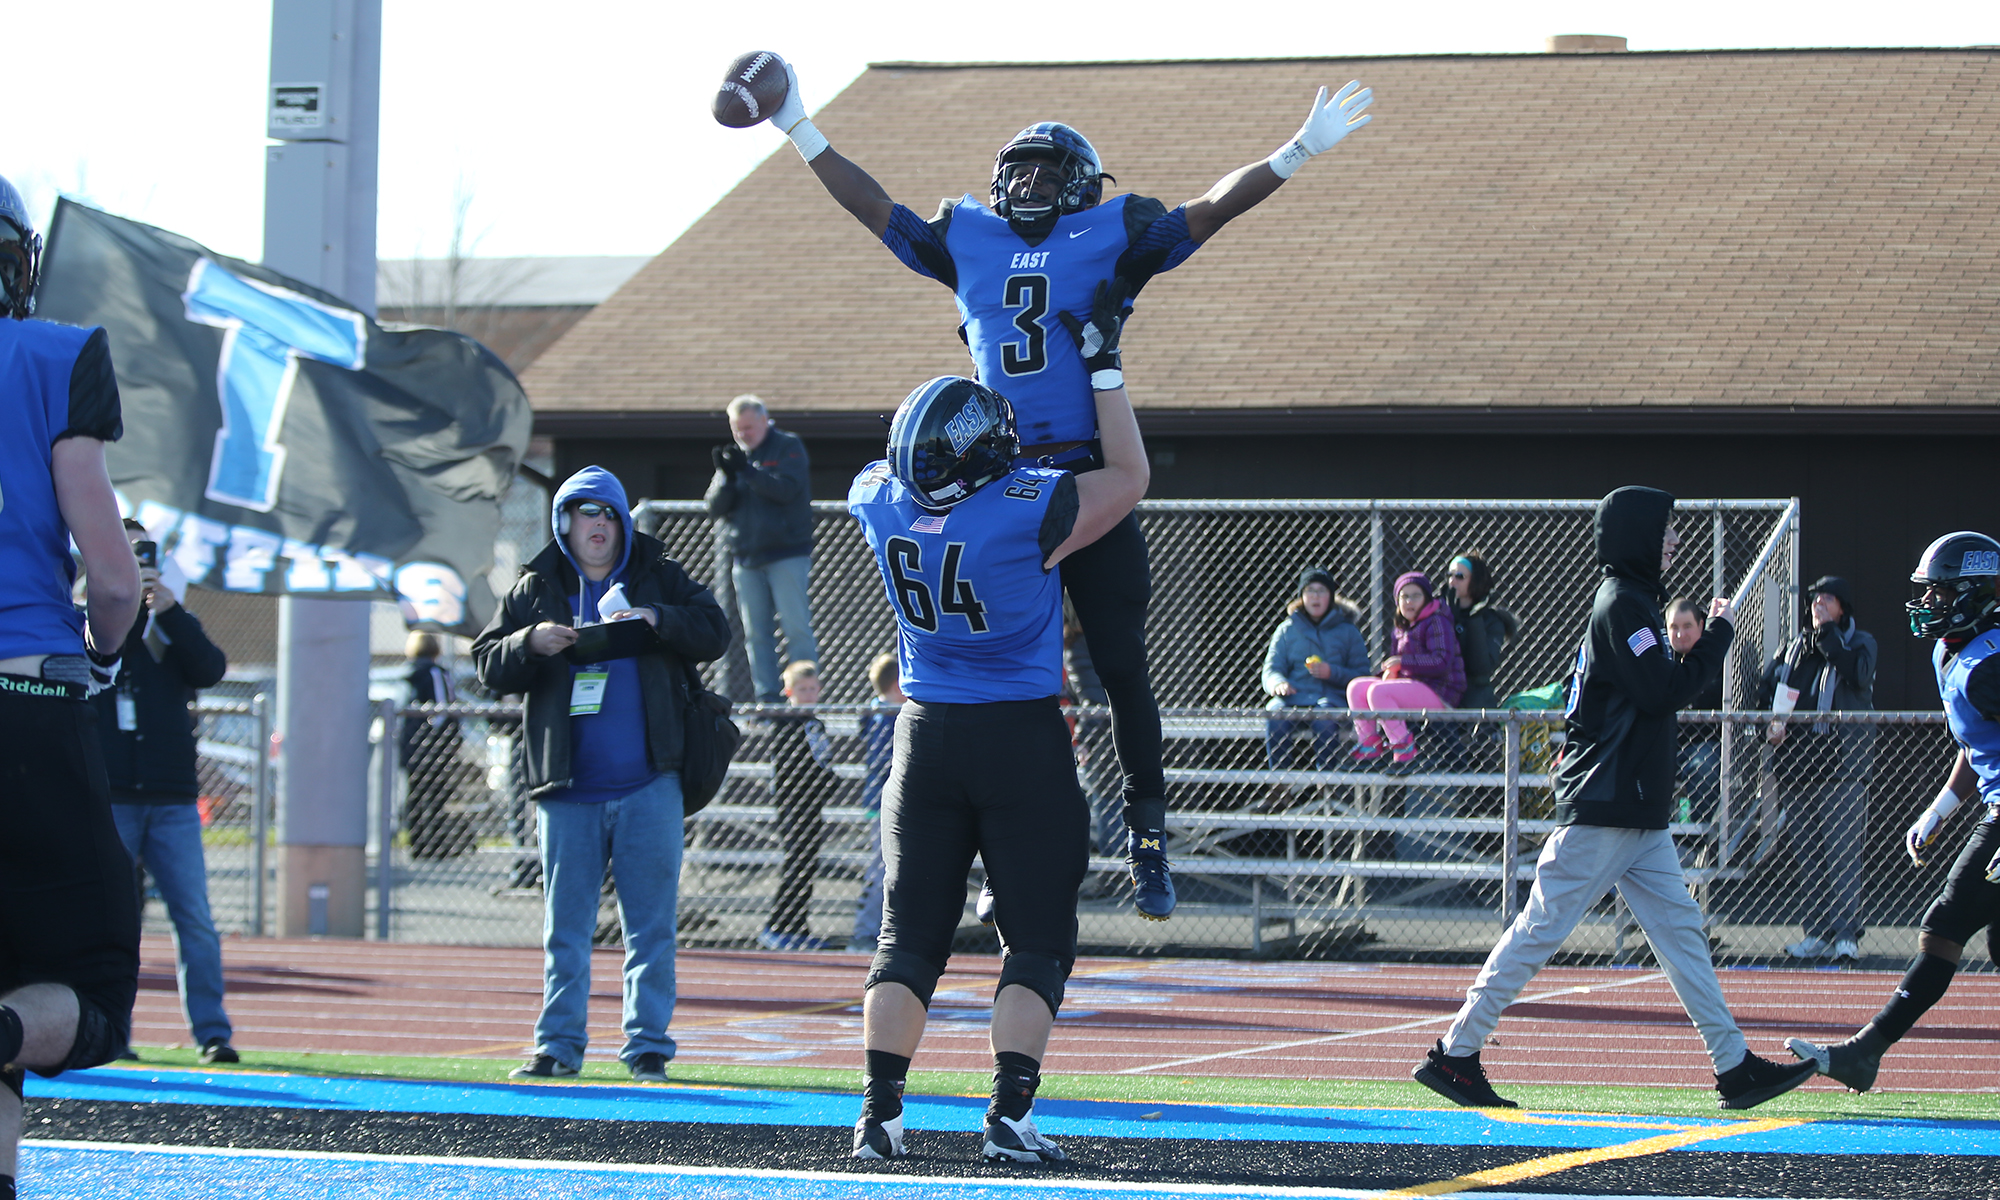 Lincoln-Way East's Alec Ogarek (64) lifts A.J. Henning (3) after Henning score one of his three touchdowns against Notre Dame.